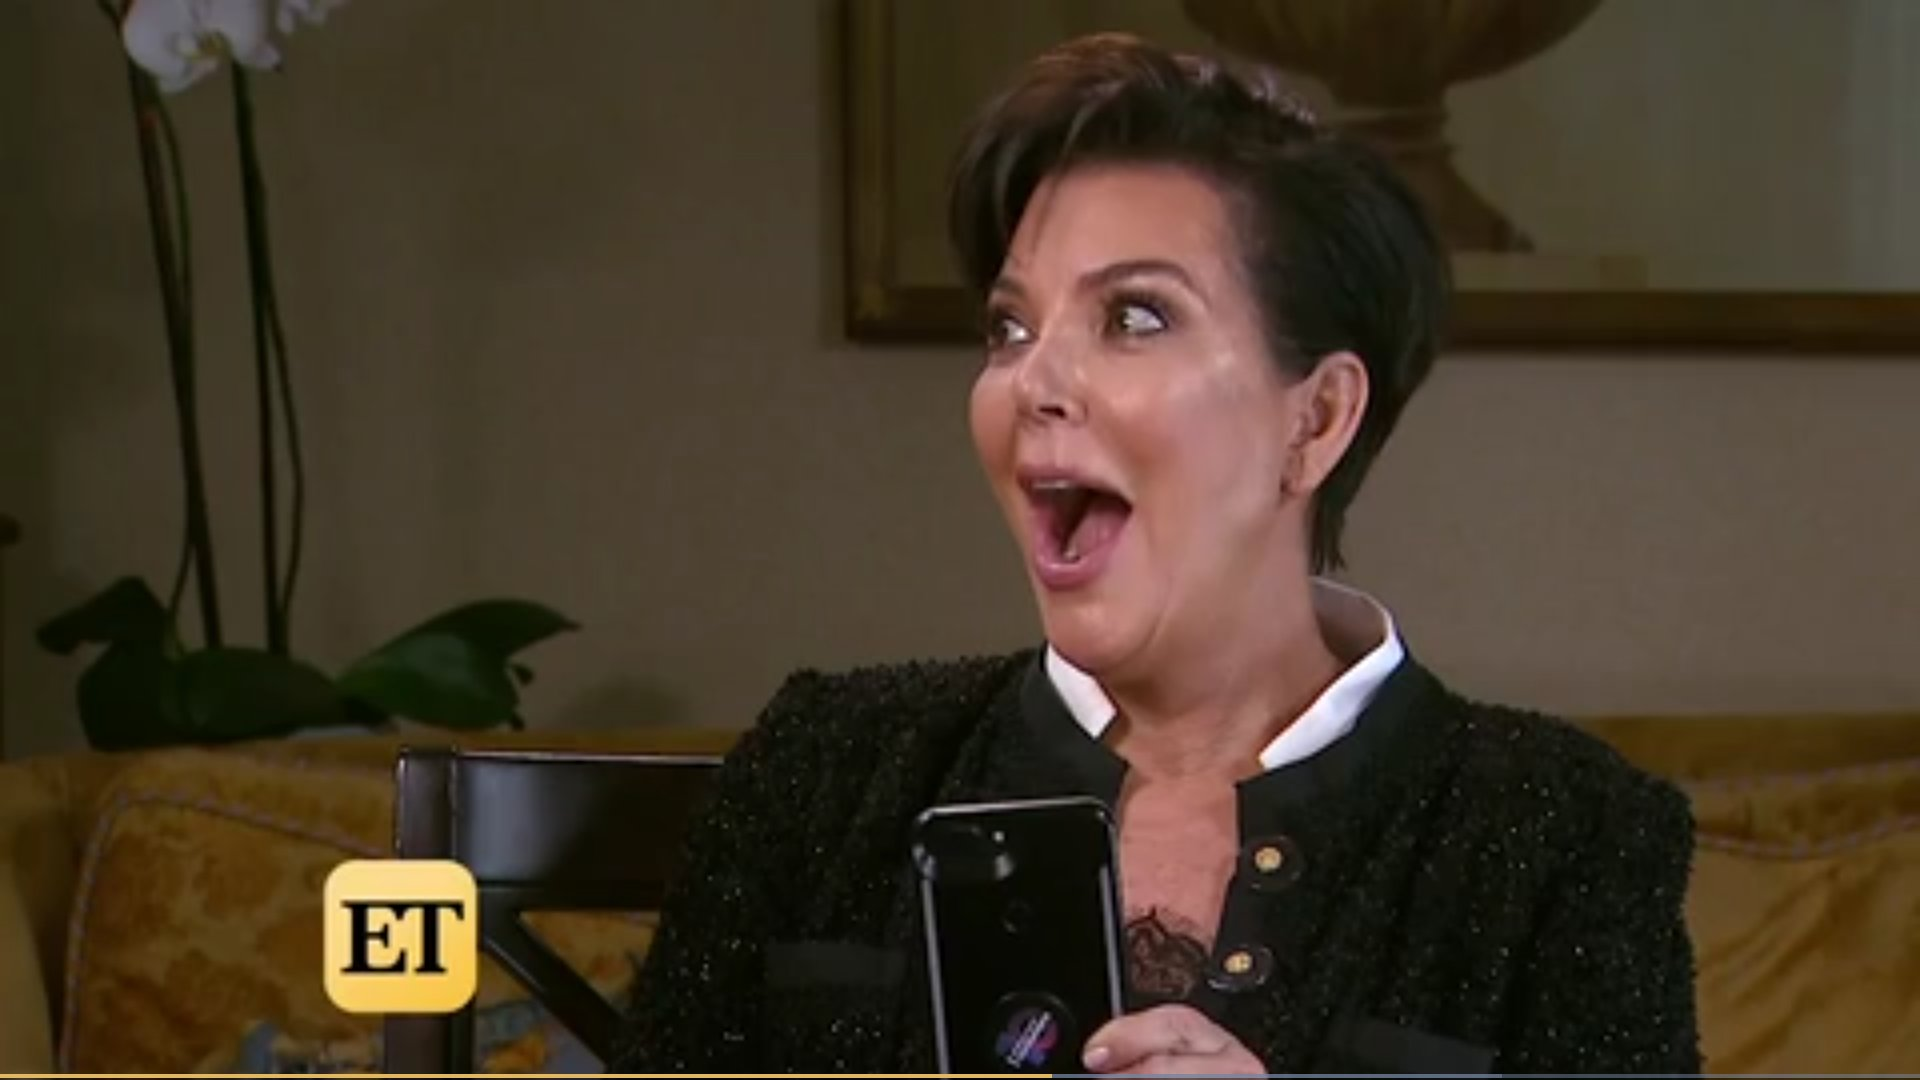 (VIDEO) Kris Jenner Prank Calls Daughter Khloe About Doing 'Playboy'